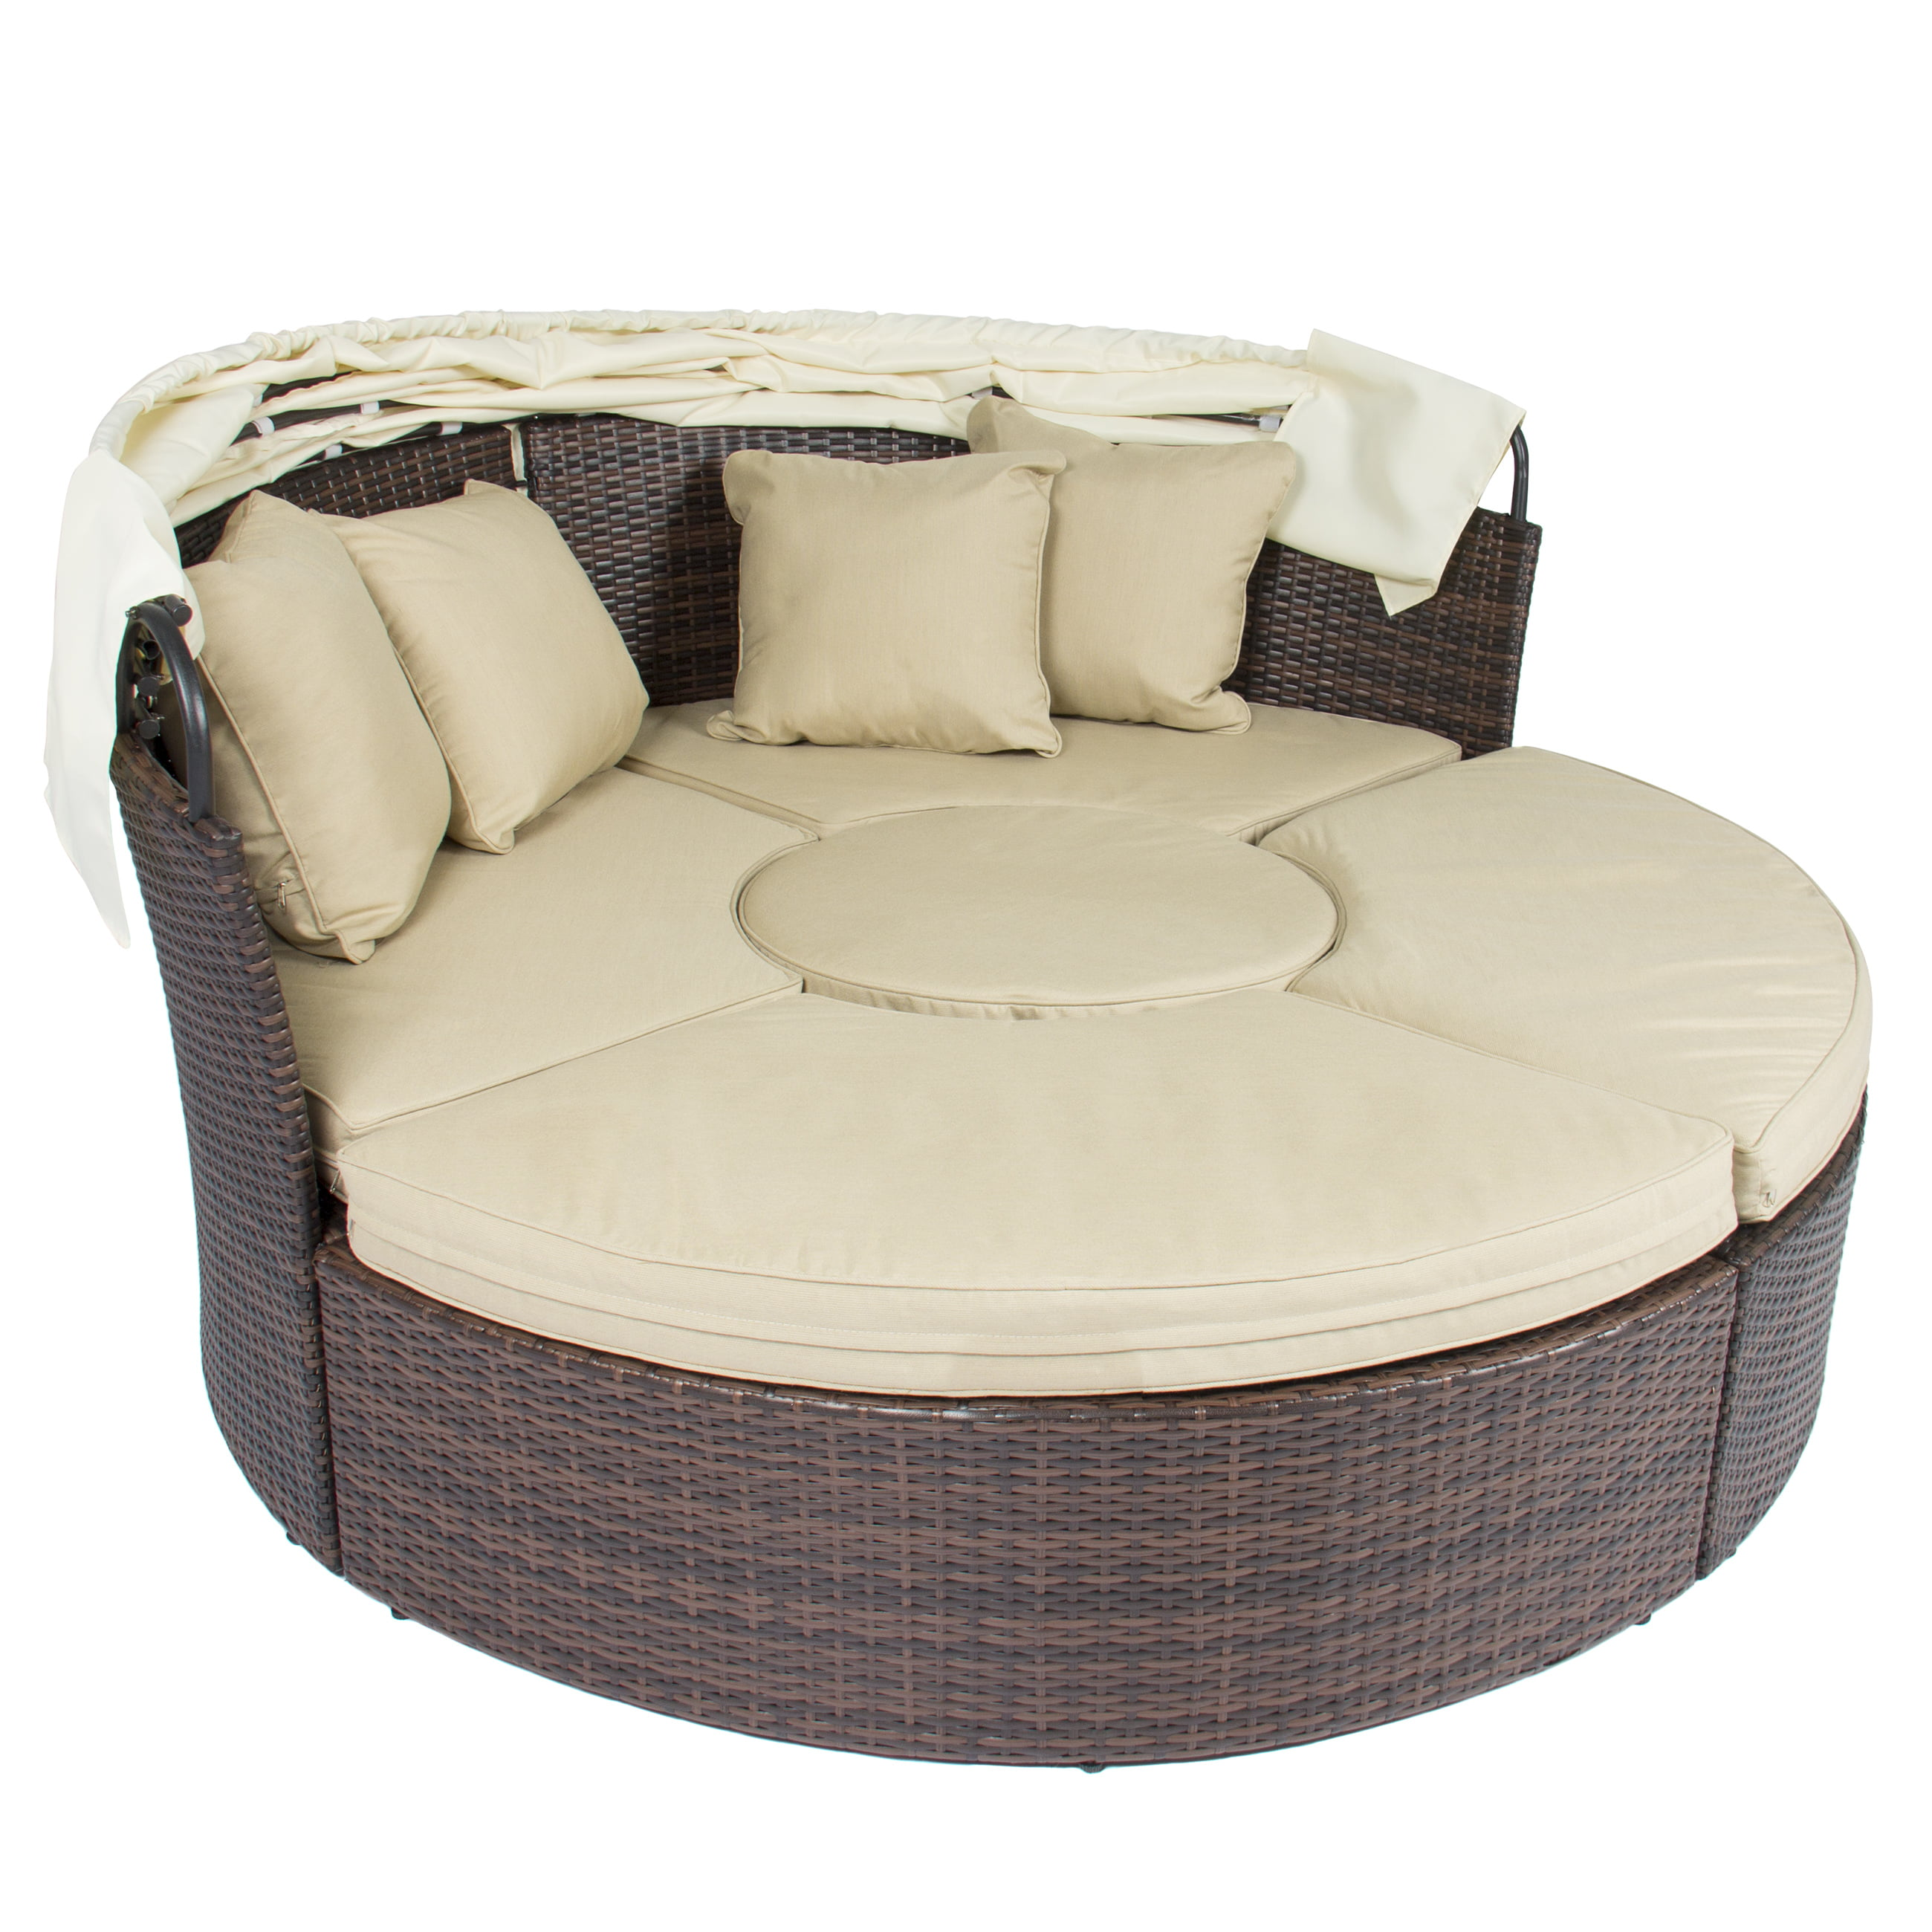 Outdoor Patio Sofa Furniture Round Retractable Canopy Daybed Brown Wicker  Rattan - Walmart.com